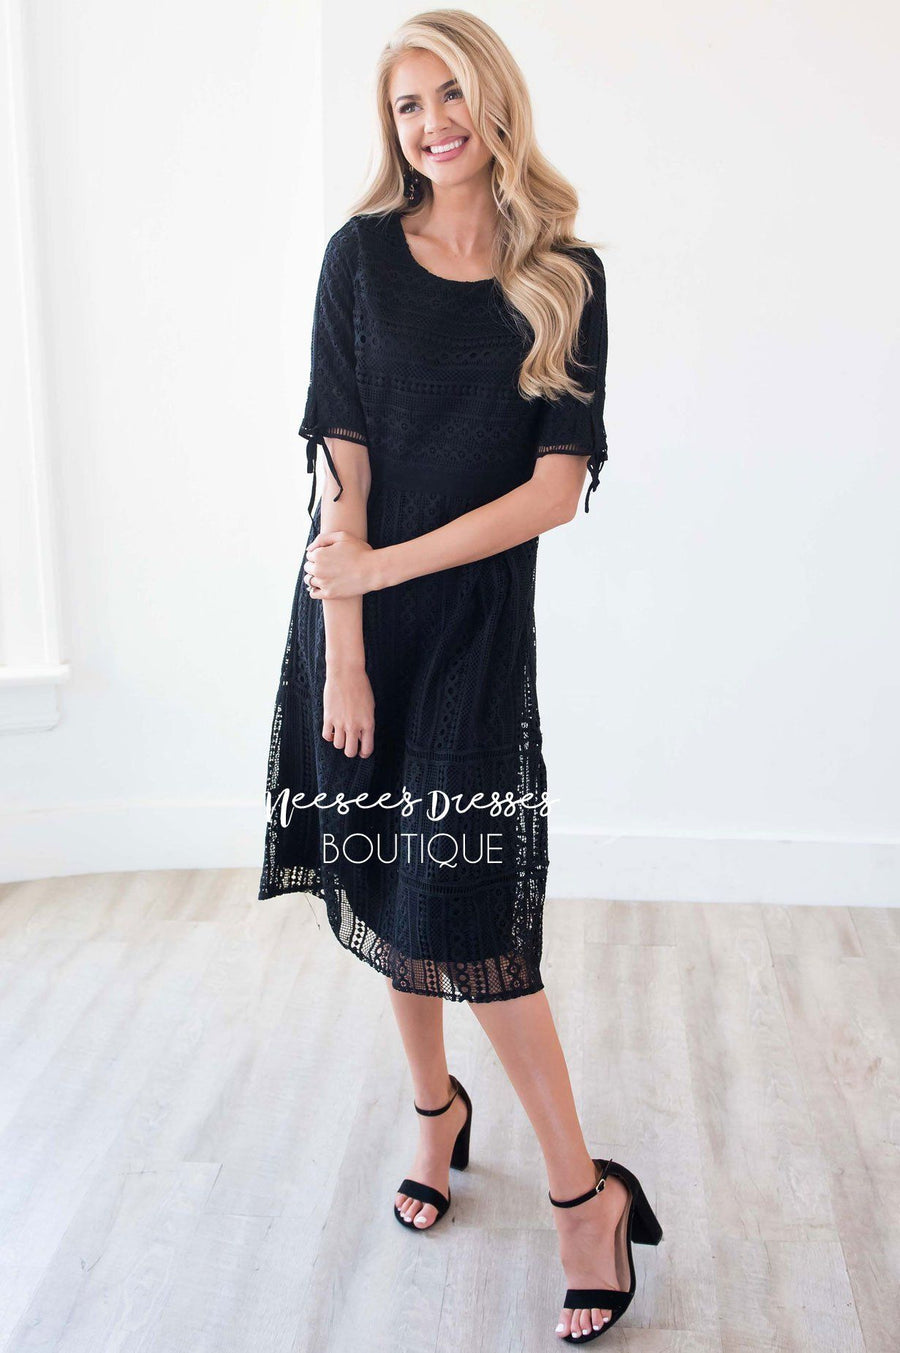 The Alyce Black Lace Dress